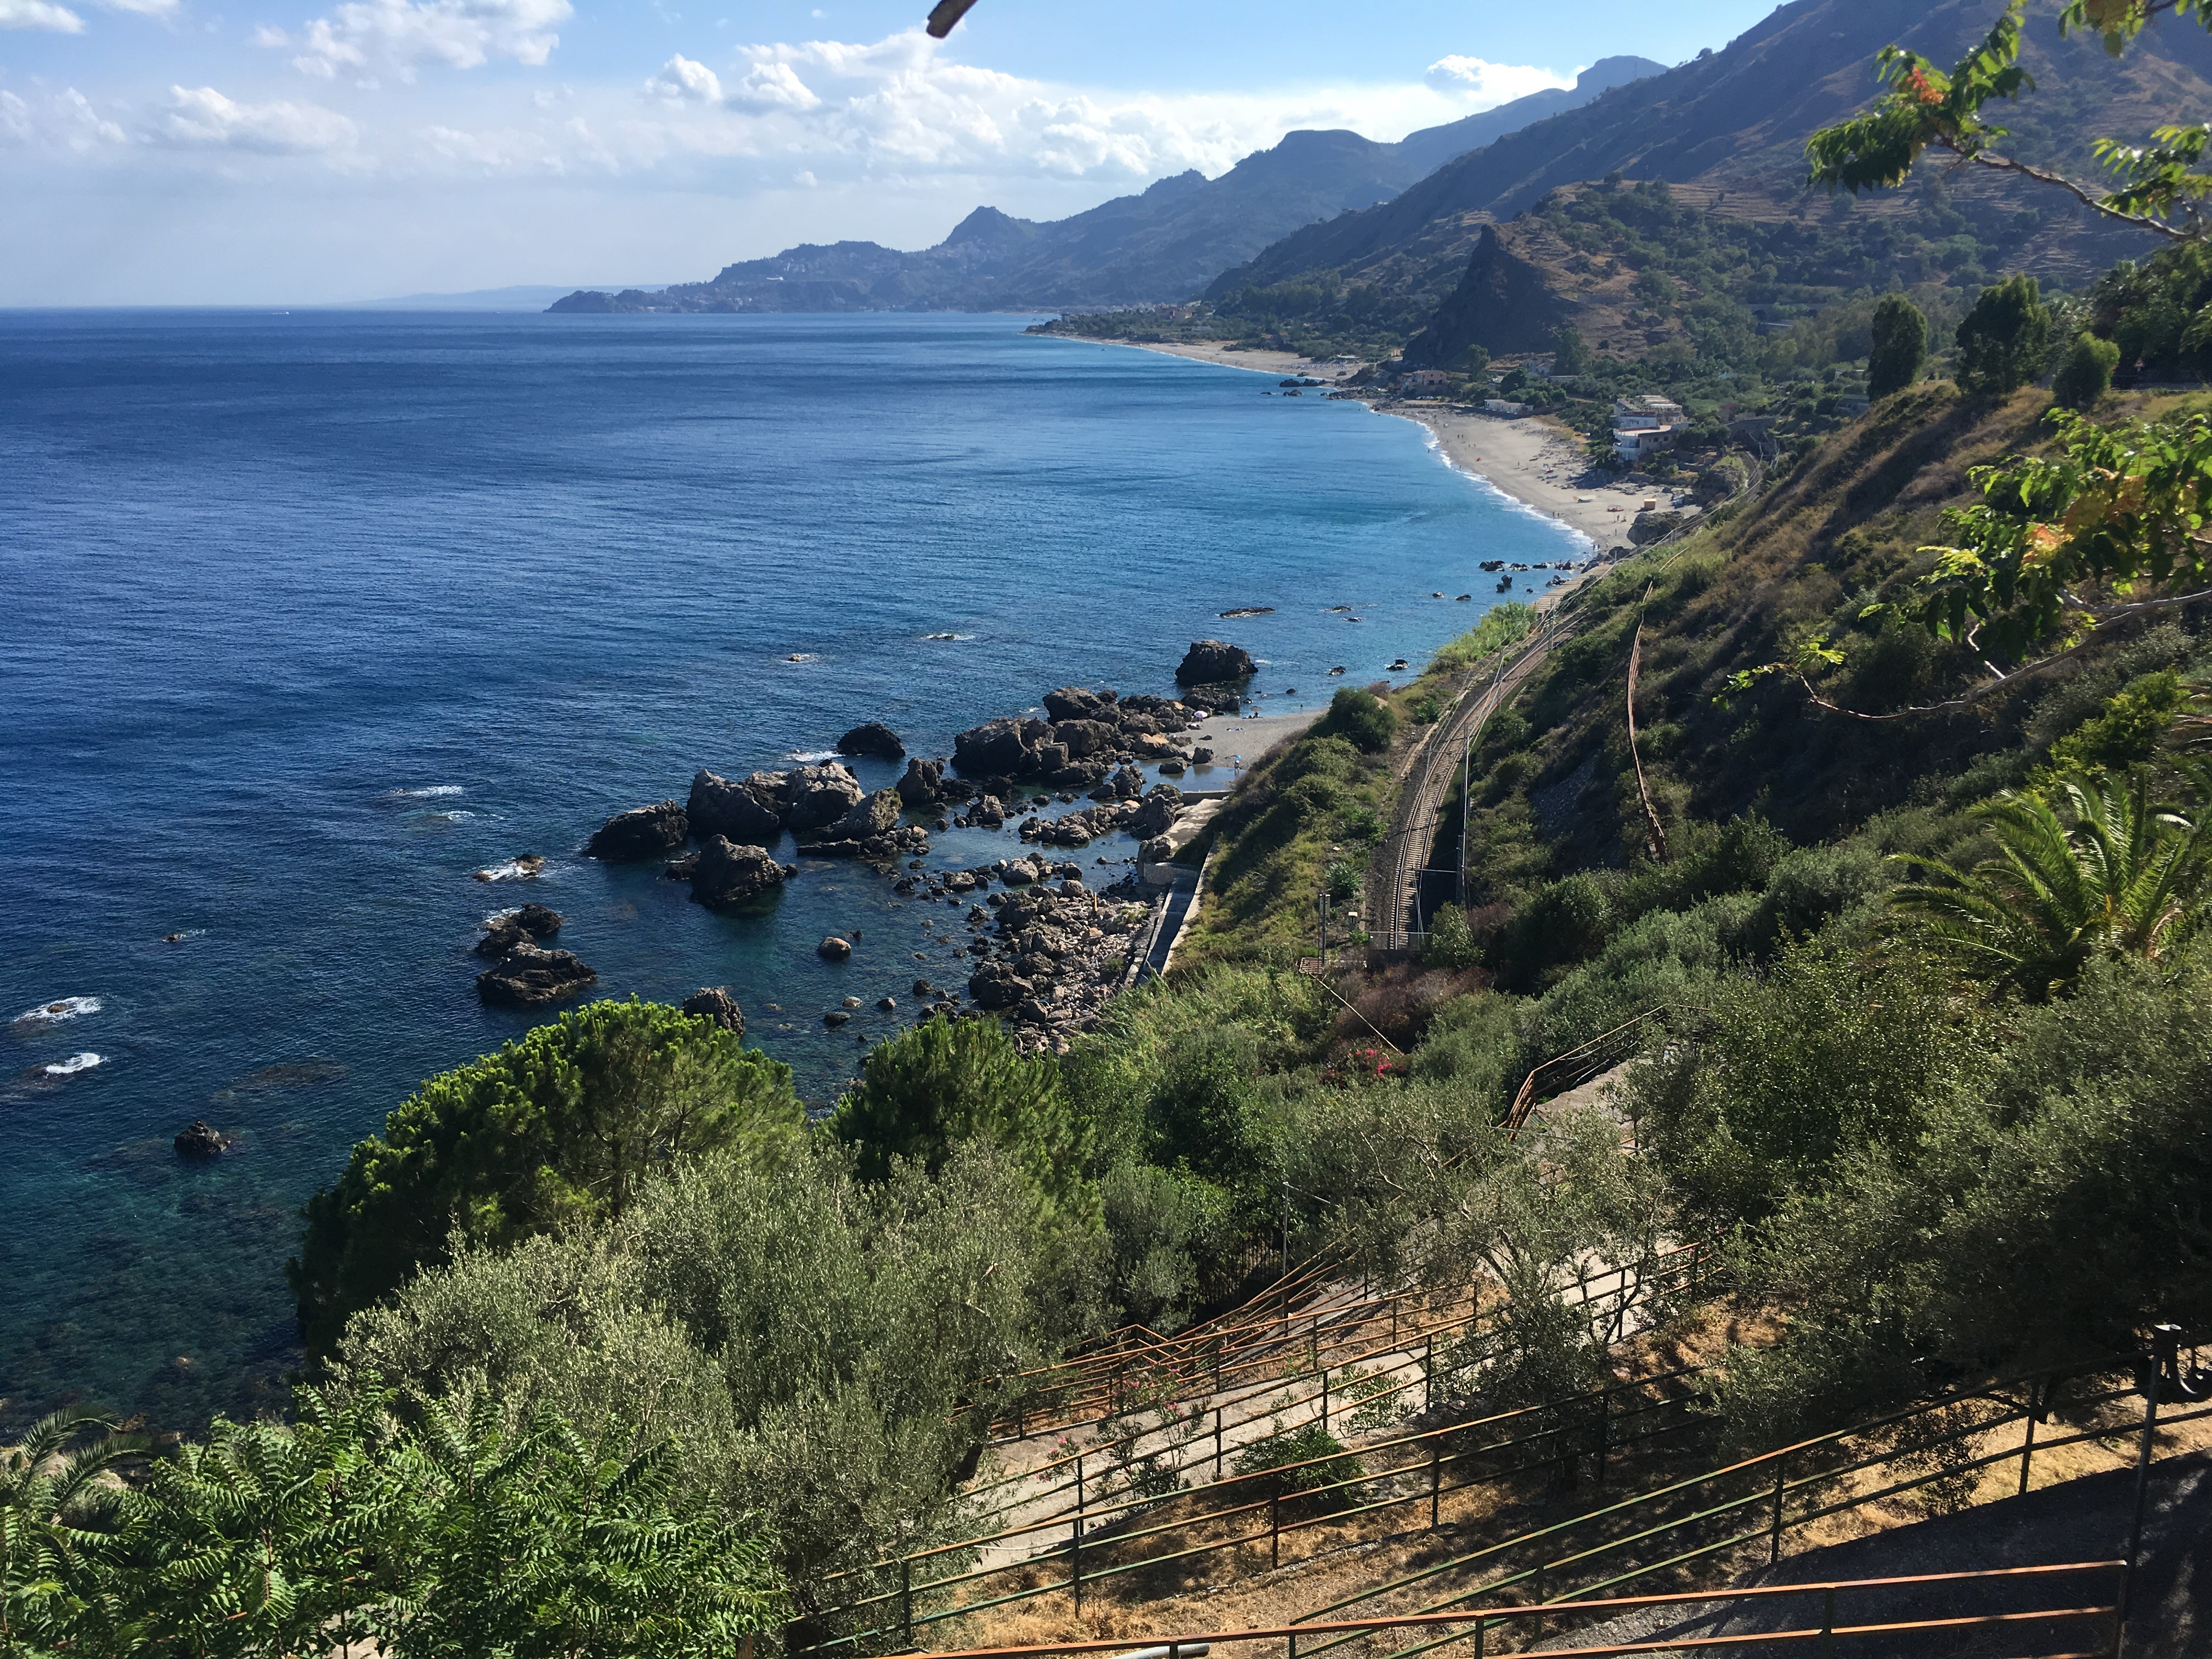 taormina castelmola forza d'agro the godfather olive trees orange lake sambucca di sicilia snow etna live volcano nature sport lava active fun hiking trekking walking excursionist Sicily mountains forest